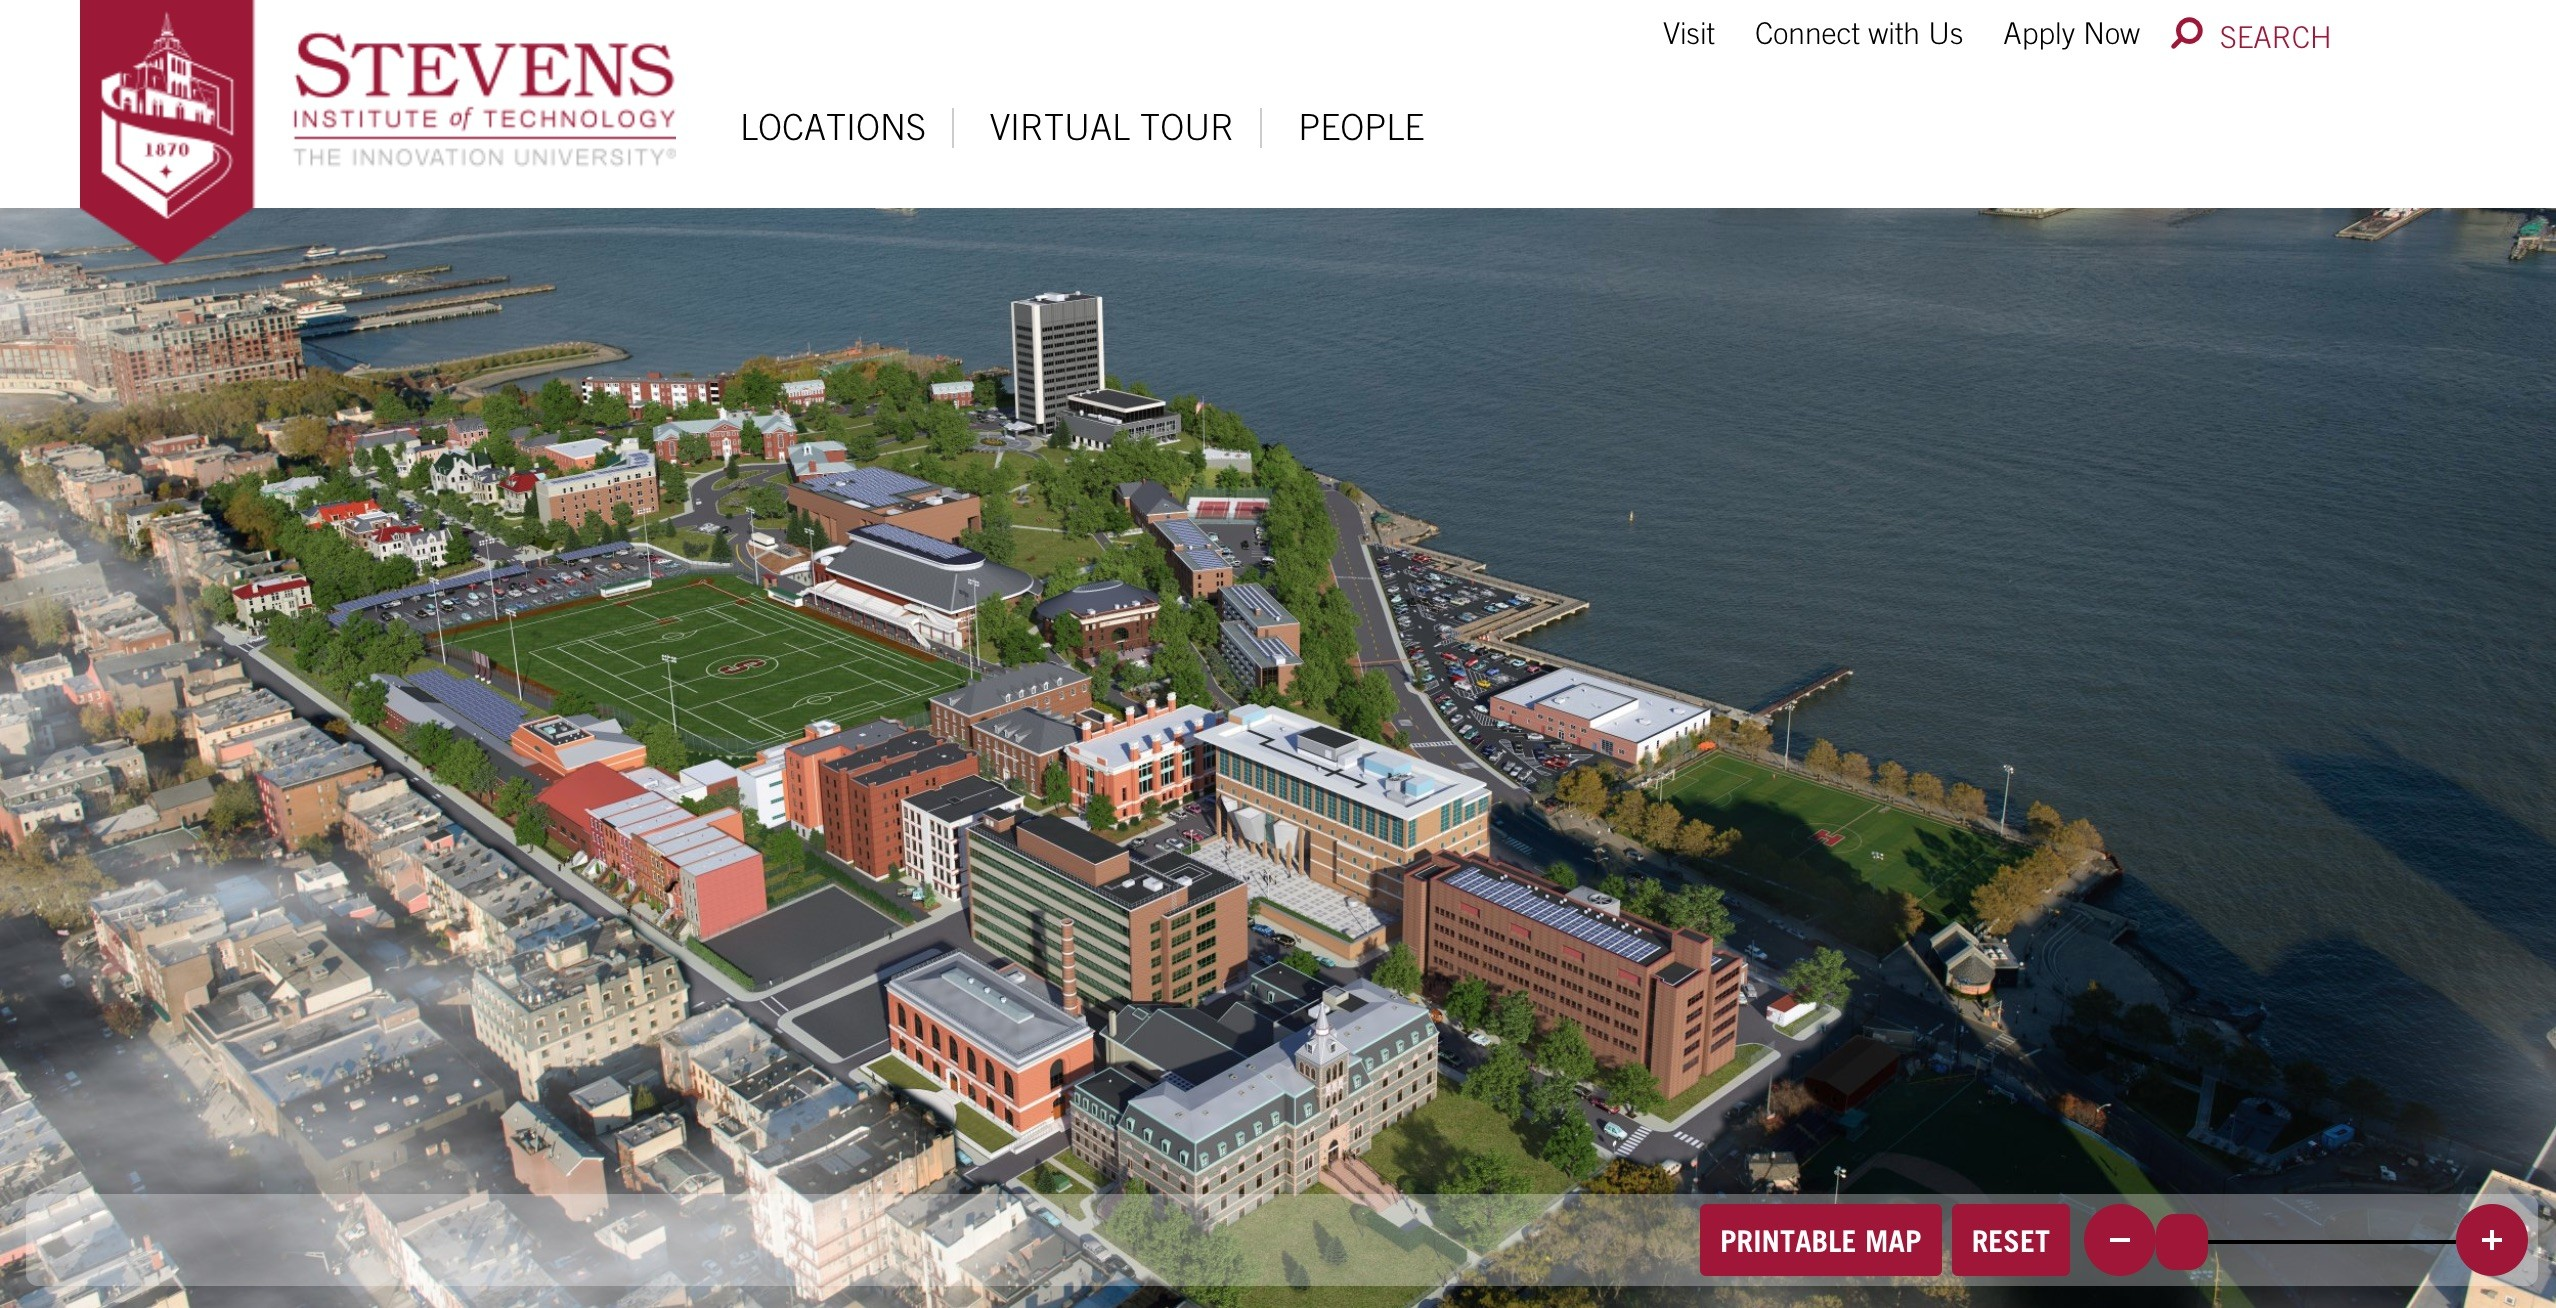 Stevens Institute Of Technology Launches Virtual Tour And